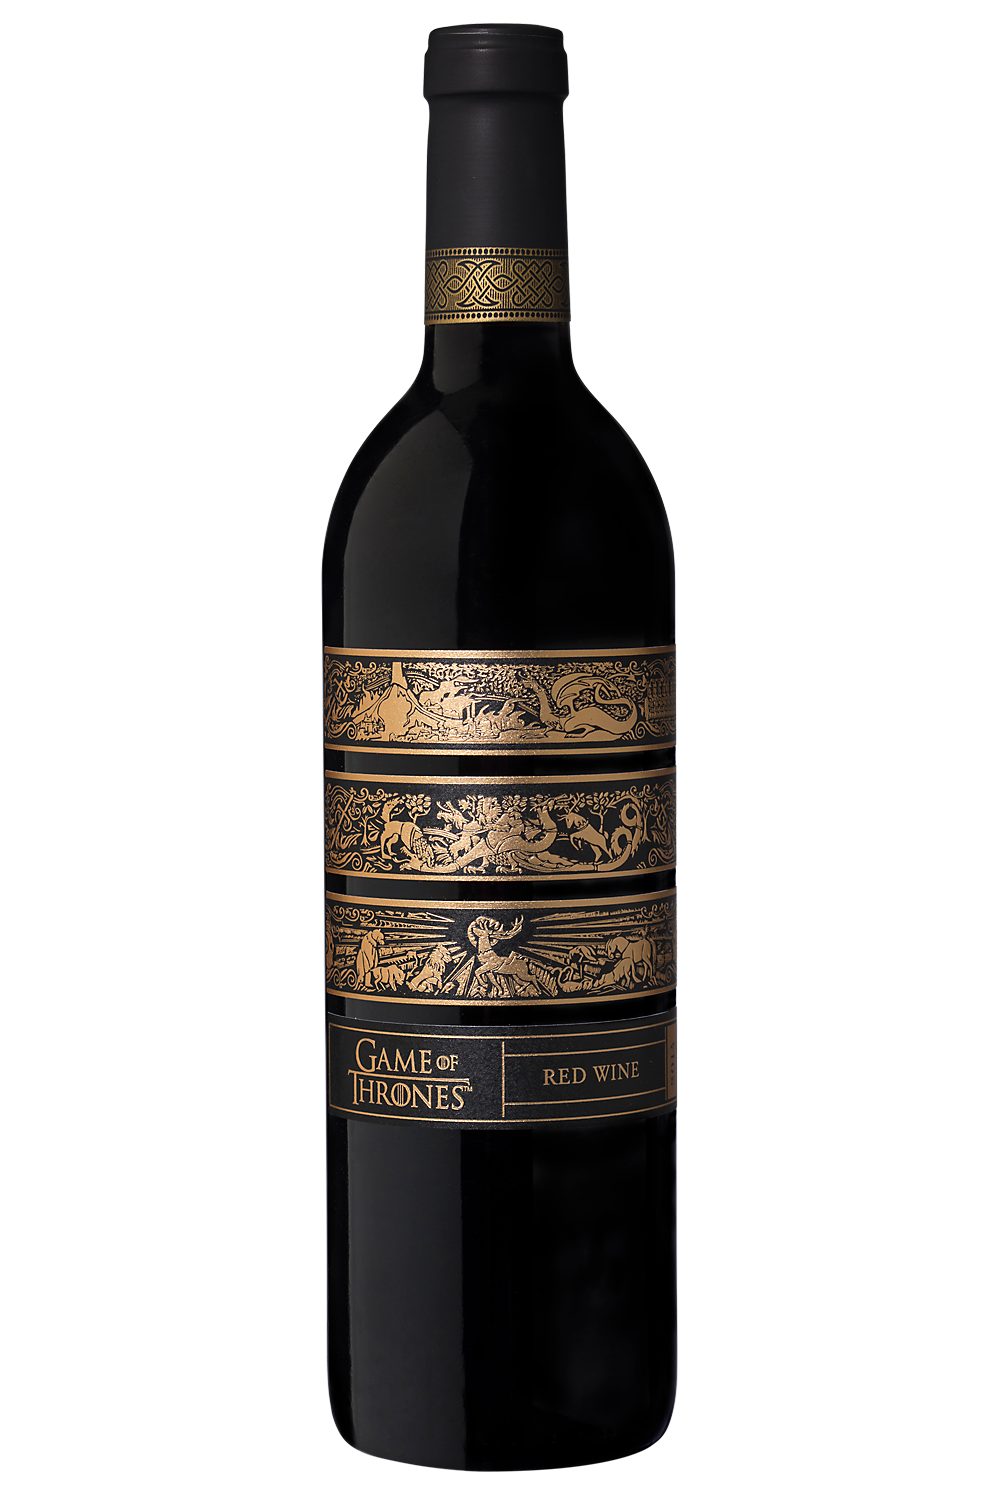 Seven Kingdoms Wines Game of Thrones Red Blend Paso Robles 2016